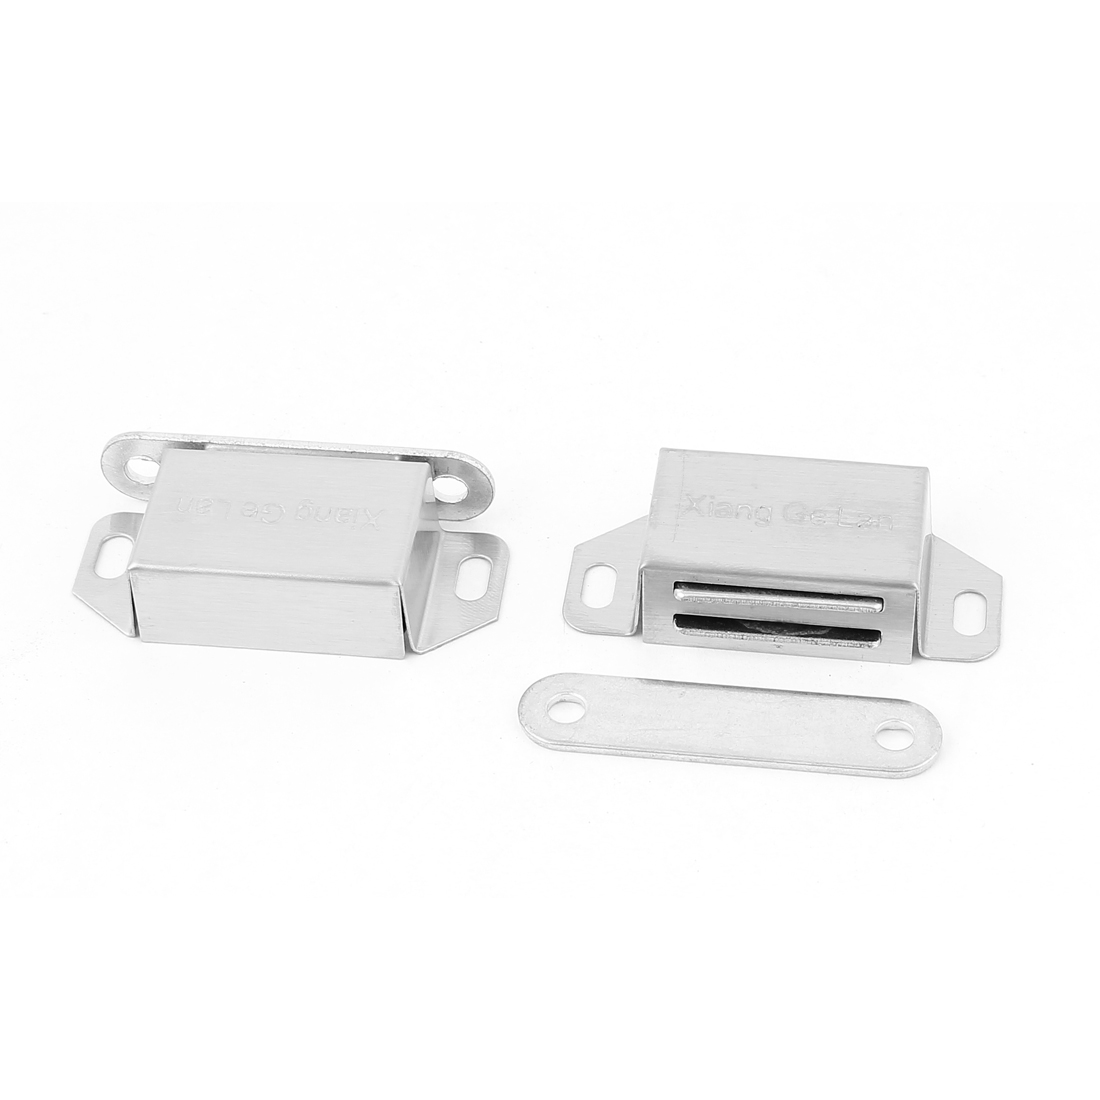 2 Pcs Stainless Steel 56mm Long Catch Latch for Cabinet Cupboard